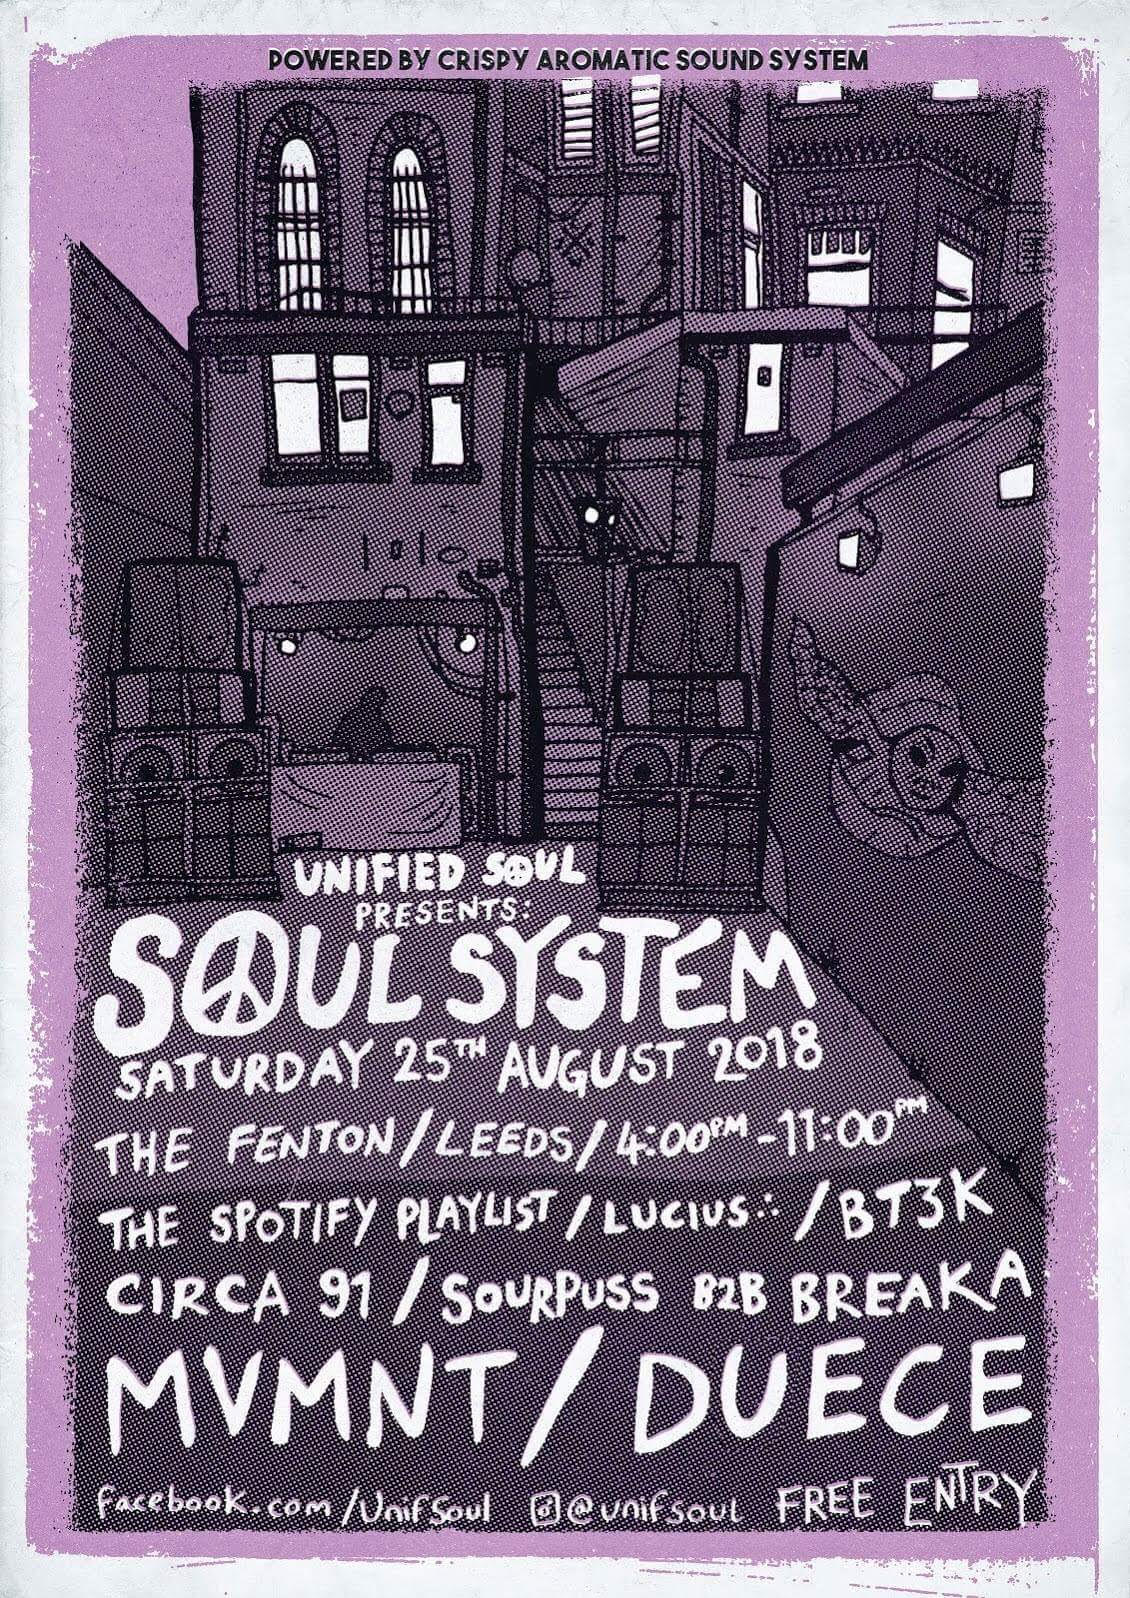 Soul System Live at The Fenton Leeds 00, Aug 25